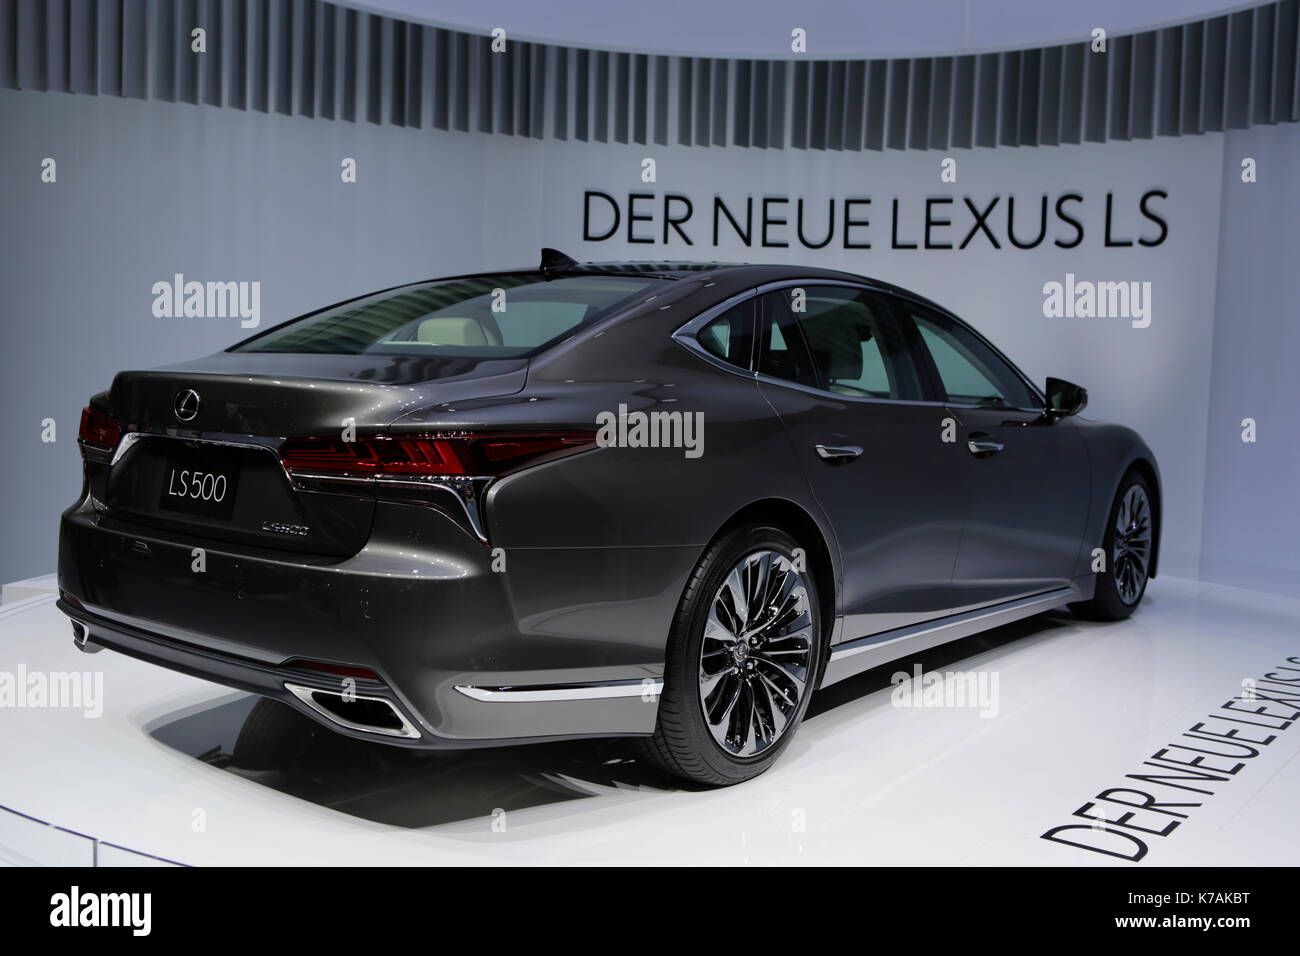 Lexus Car Ls Stock Photos Lexus Car Ls Stock Images Alamy